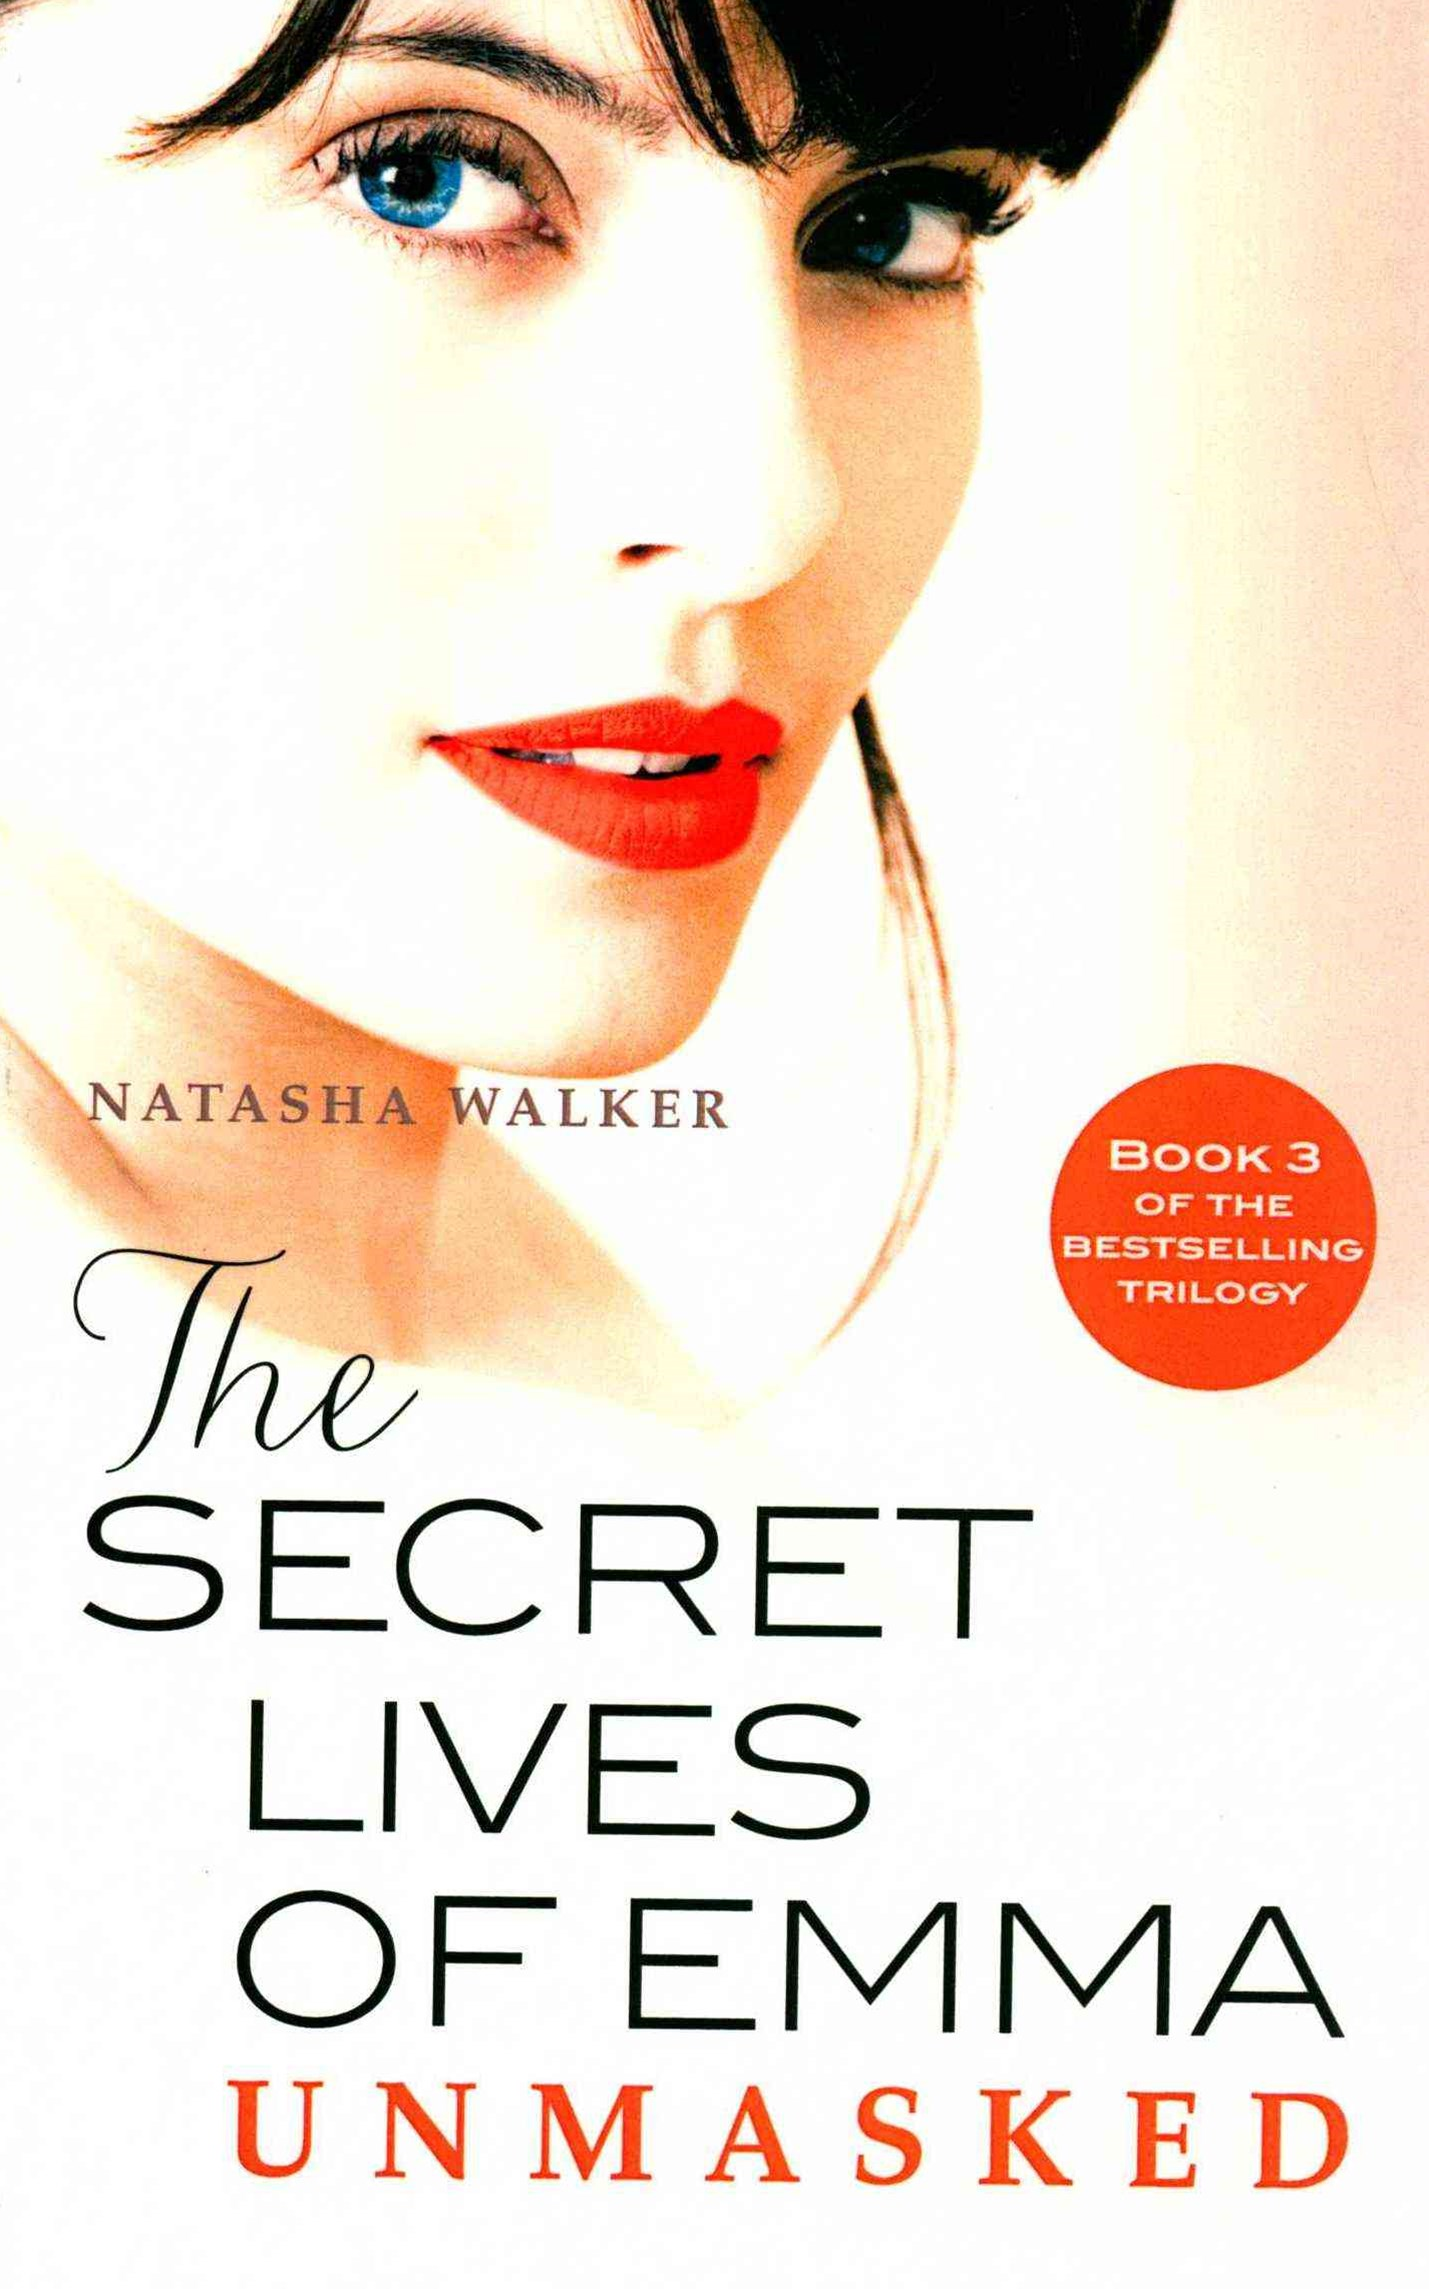 The Secret Lives of Emma: Unmasked